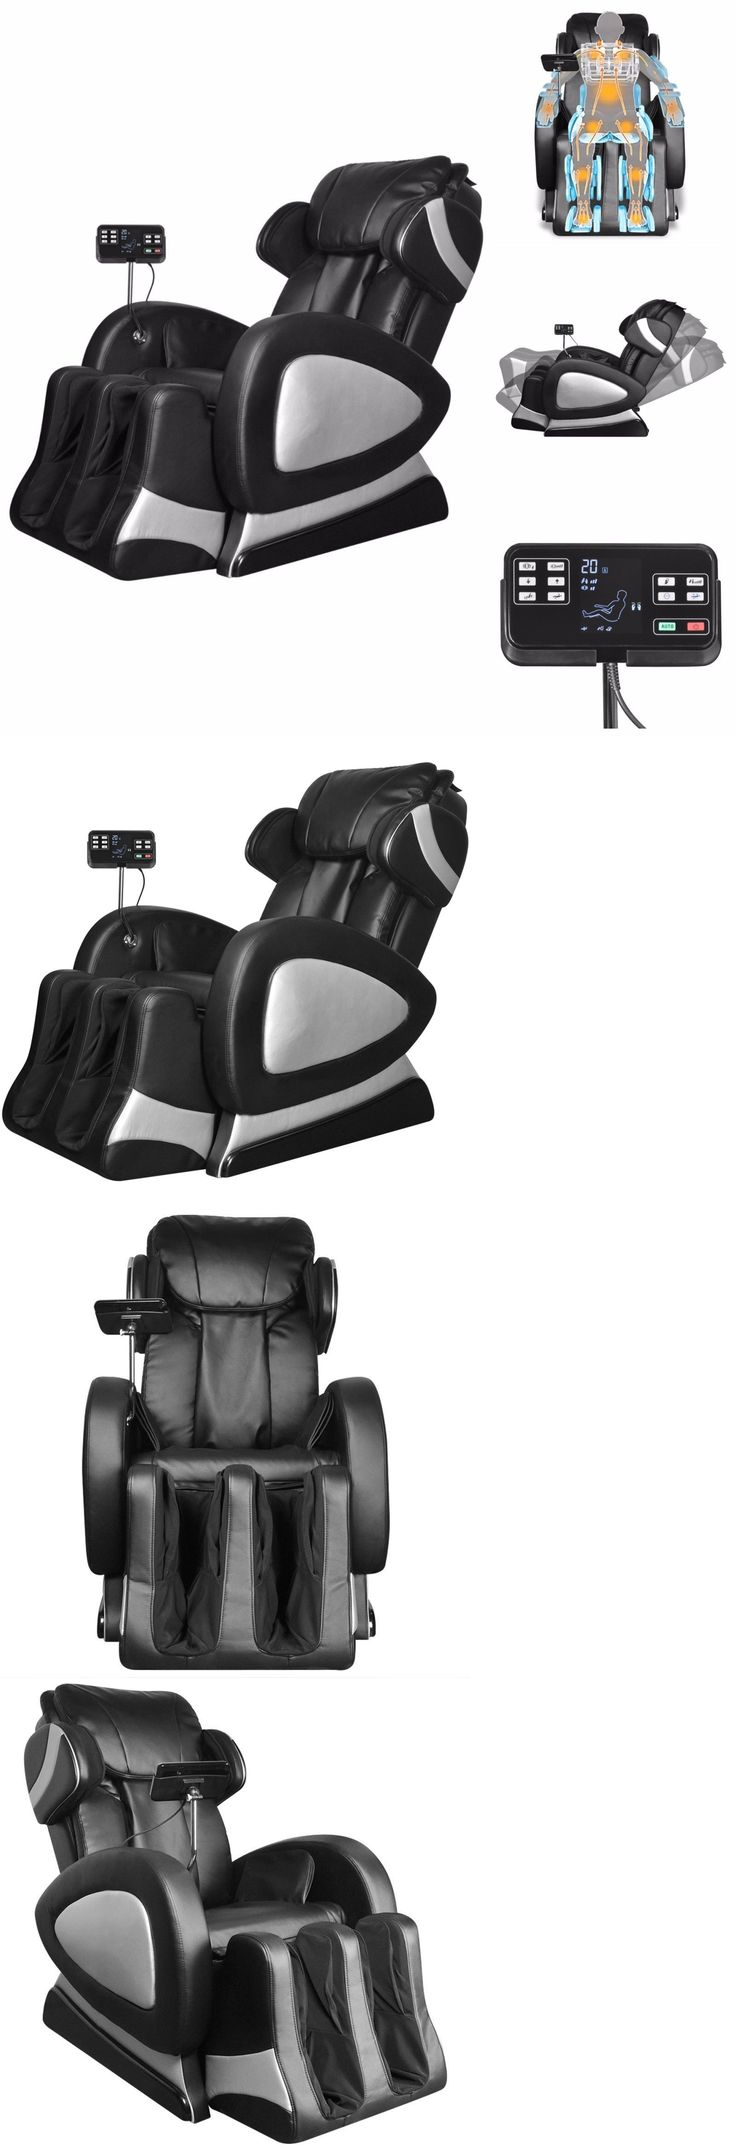 Electric Massage Chairs: Full Body Shiatsu Massage Chair Back Pain Therapy Zero Gravity Stretched Relax BUY IT NOW ONLY: $829.99